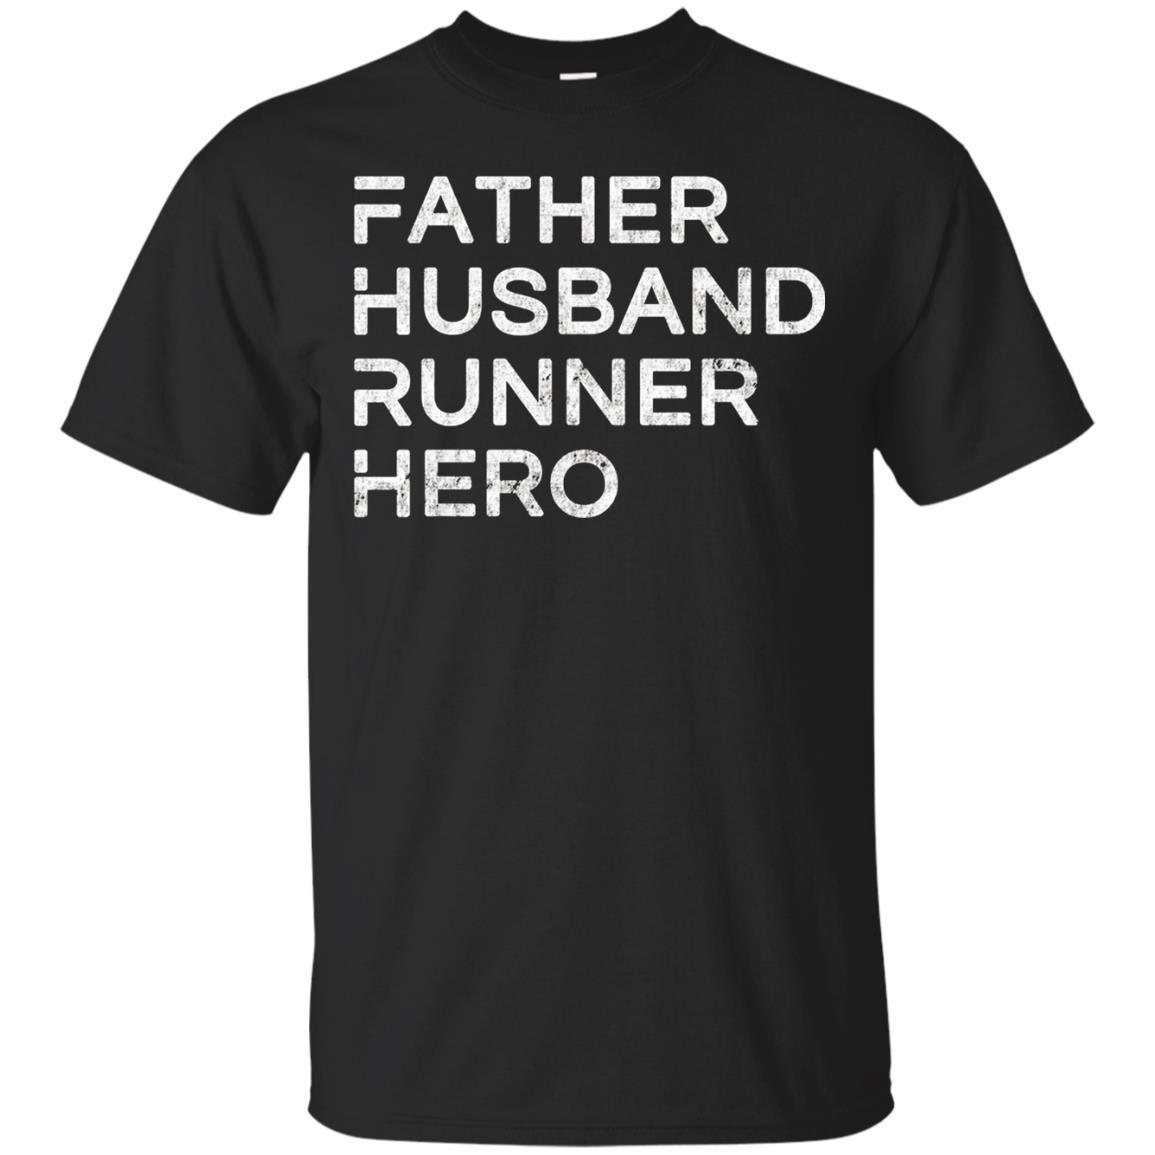 Mens Father Husband Runner Hero – Inspirational Father T-Shirt